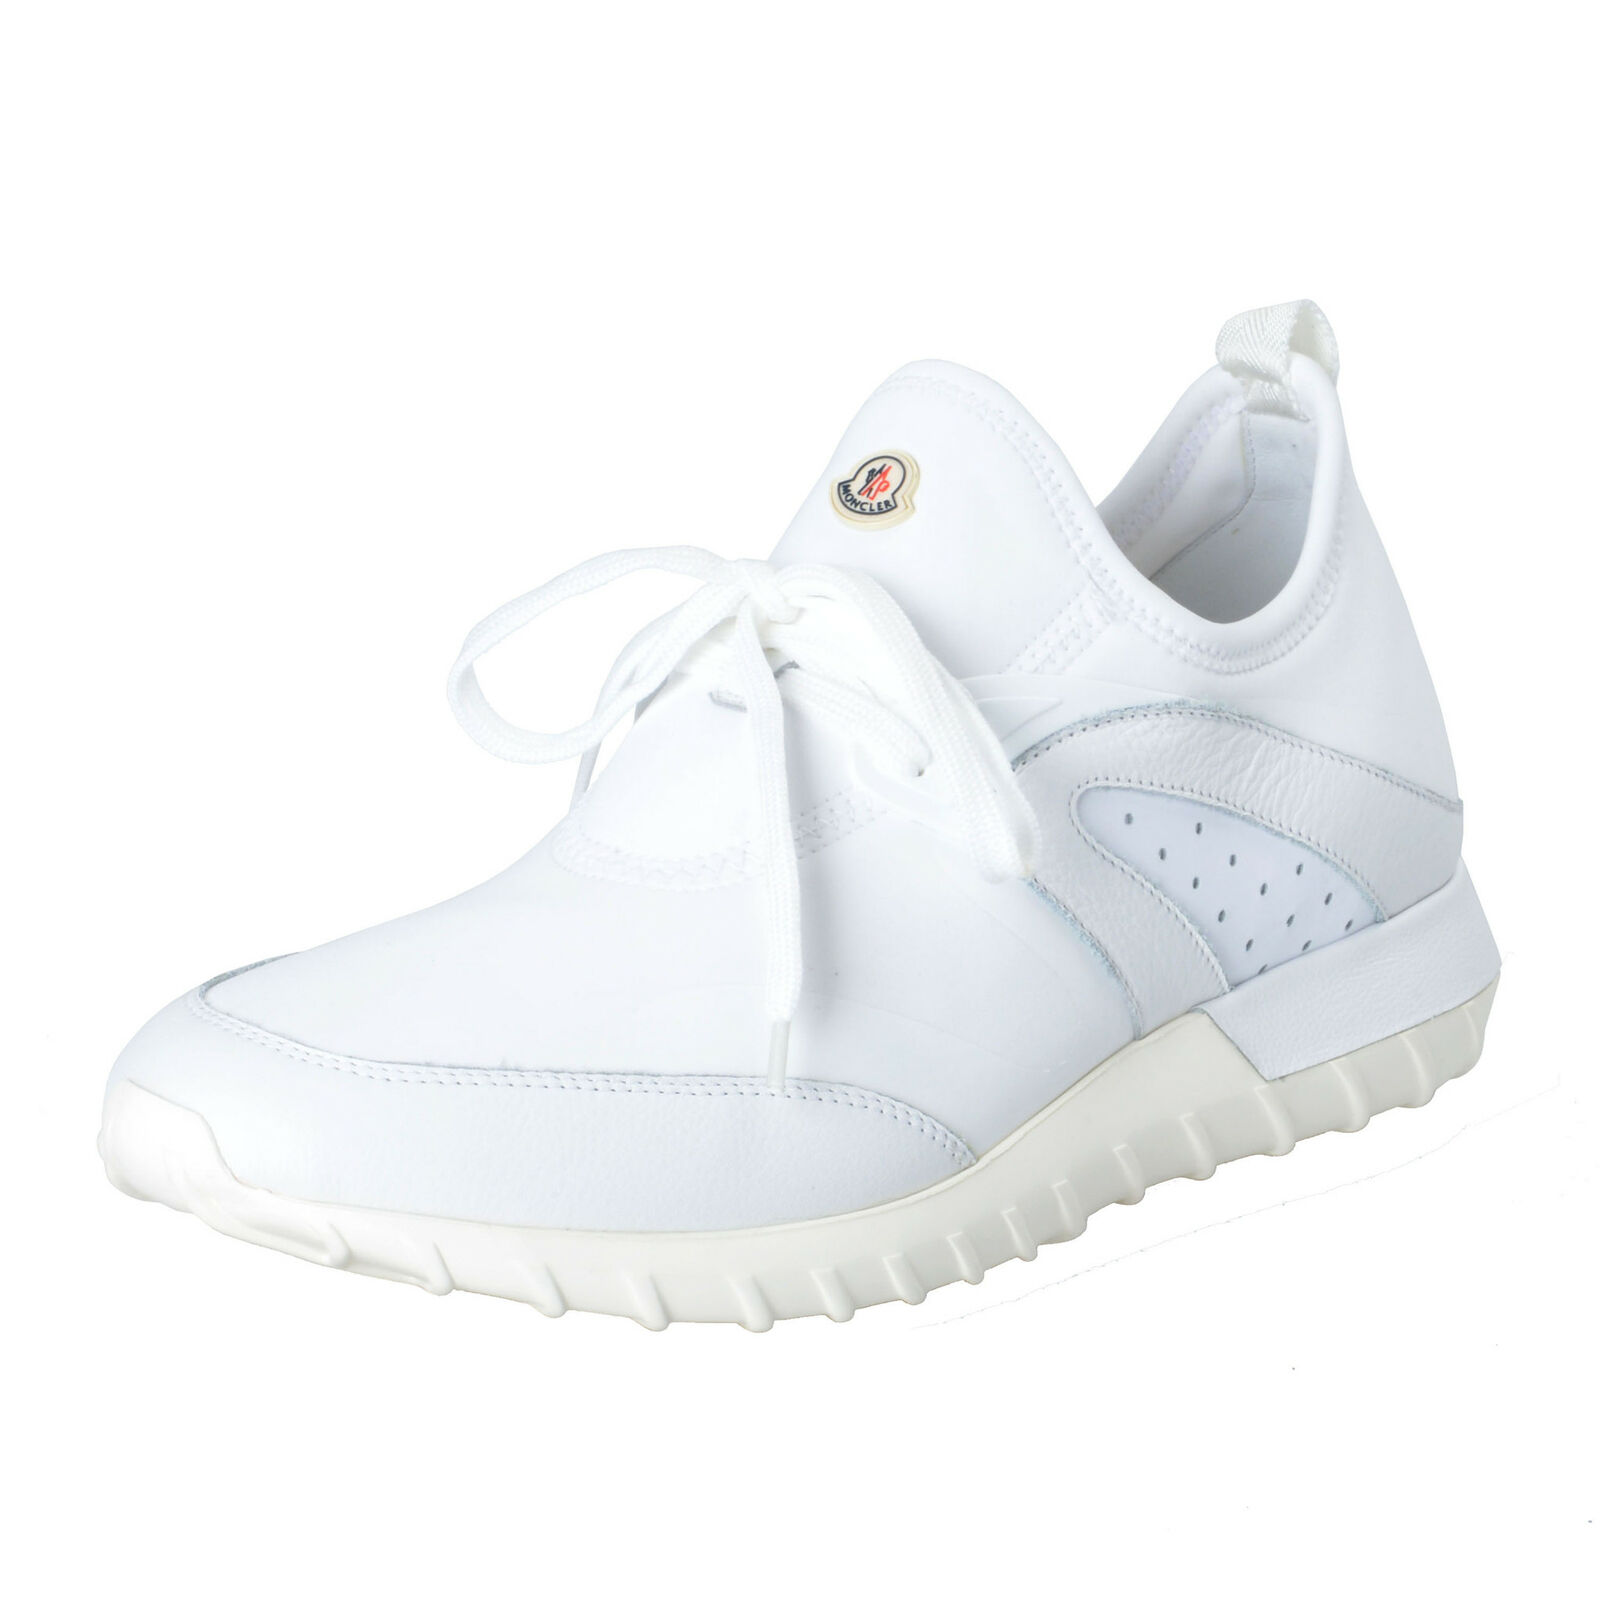 Moncler   Oricle   white Leder Leinen Mode Turnshoes Sz 10 10.5 13